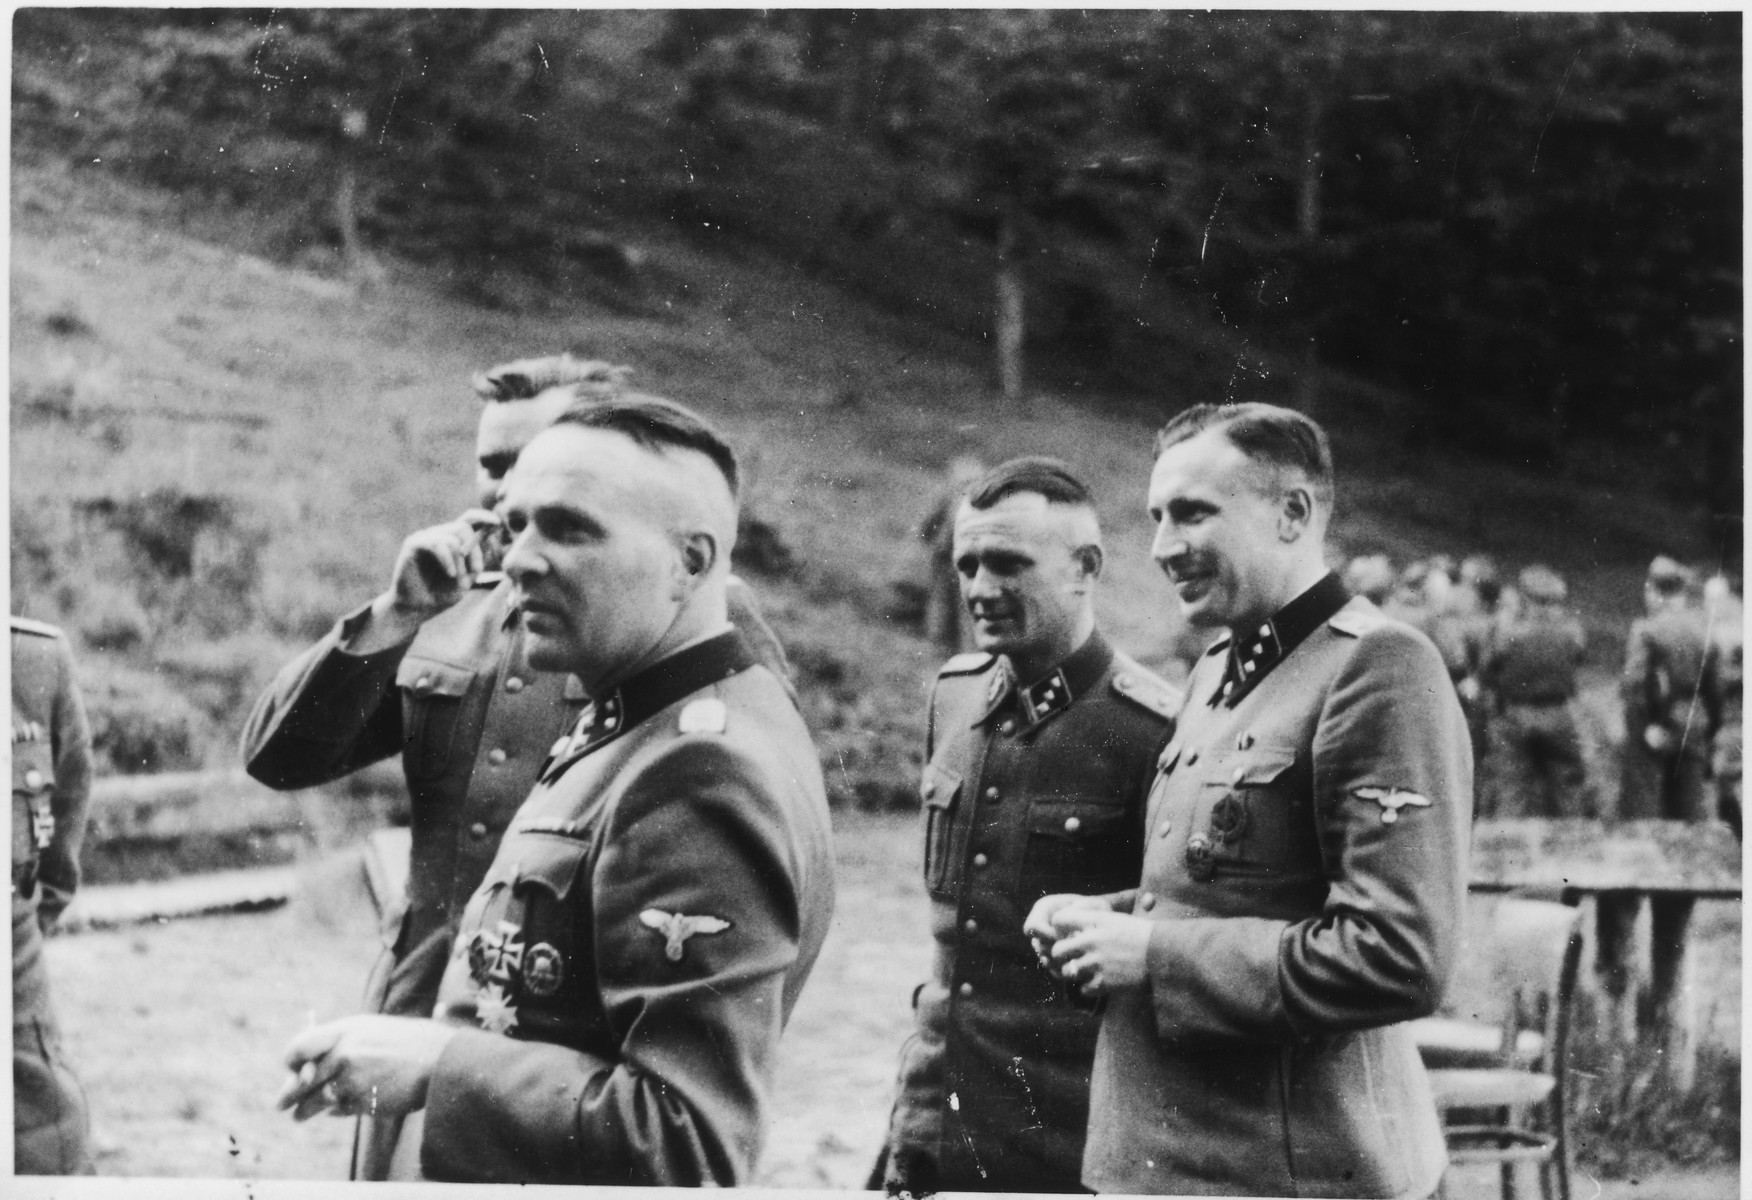 SS officers socialize on the grounds of the SS retreat Solahuette outside of Auschwitz.   From left to right they are: Rudolf Hoess, Josef Kramer (partially obscured behind him), Anton Thumann and Karl Hoecker.  [Based on the officers visiting Solahutte, we surmise that the photographs were taken to honor Rudolf Hoess who completed his tenure as garrison senior on July 29.]